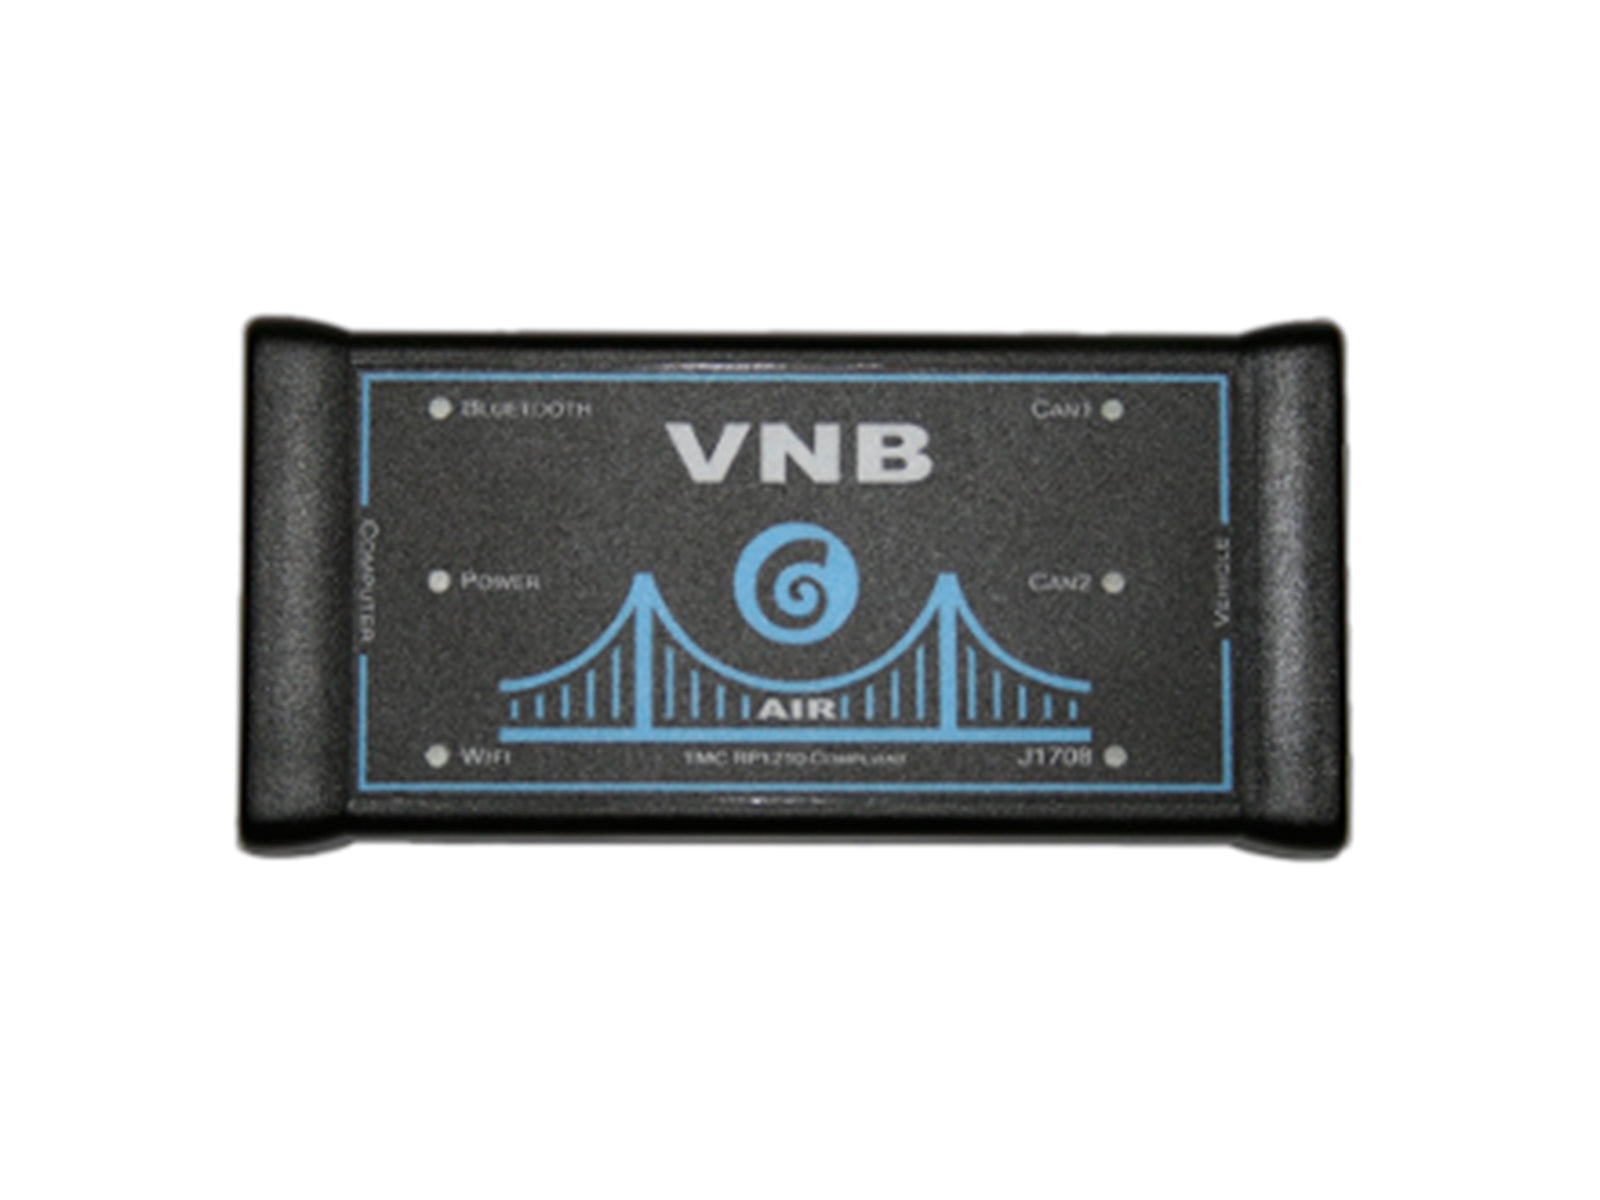 Grandview Vehicle Network Bridge Kit (VNB) Air Wireless